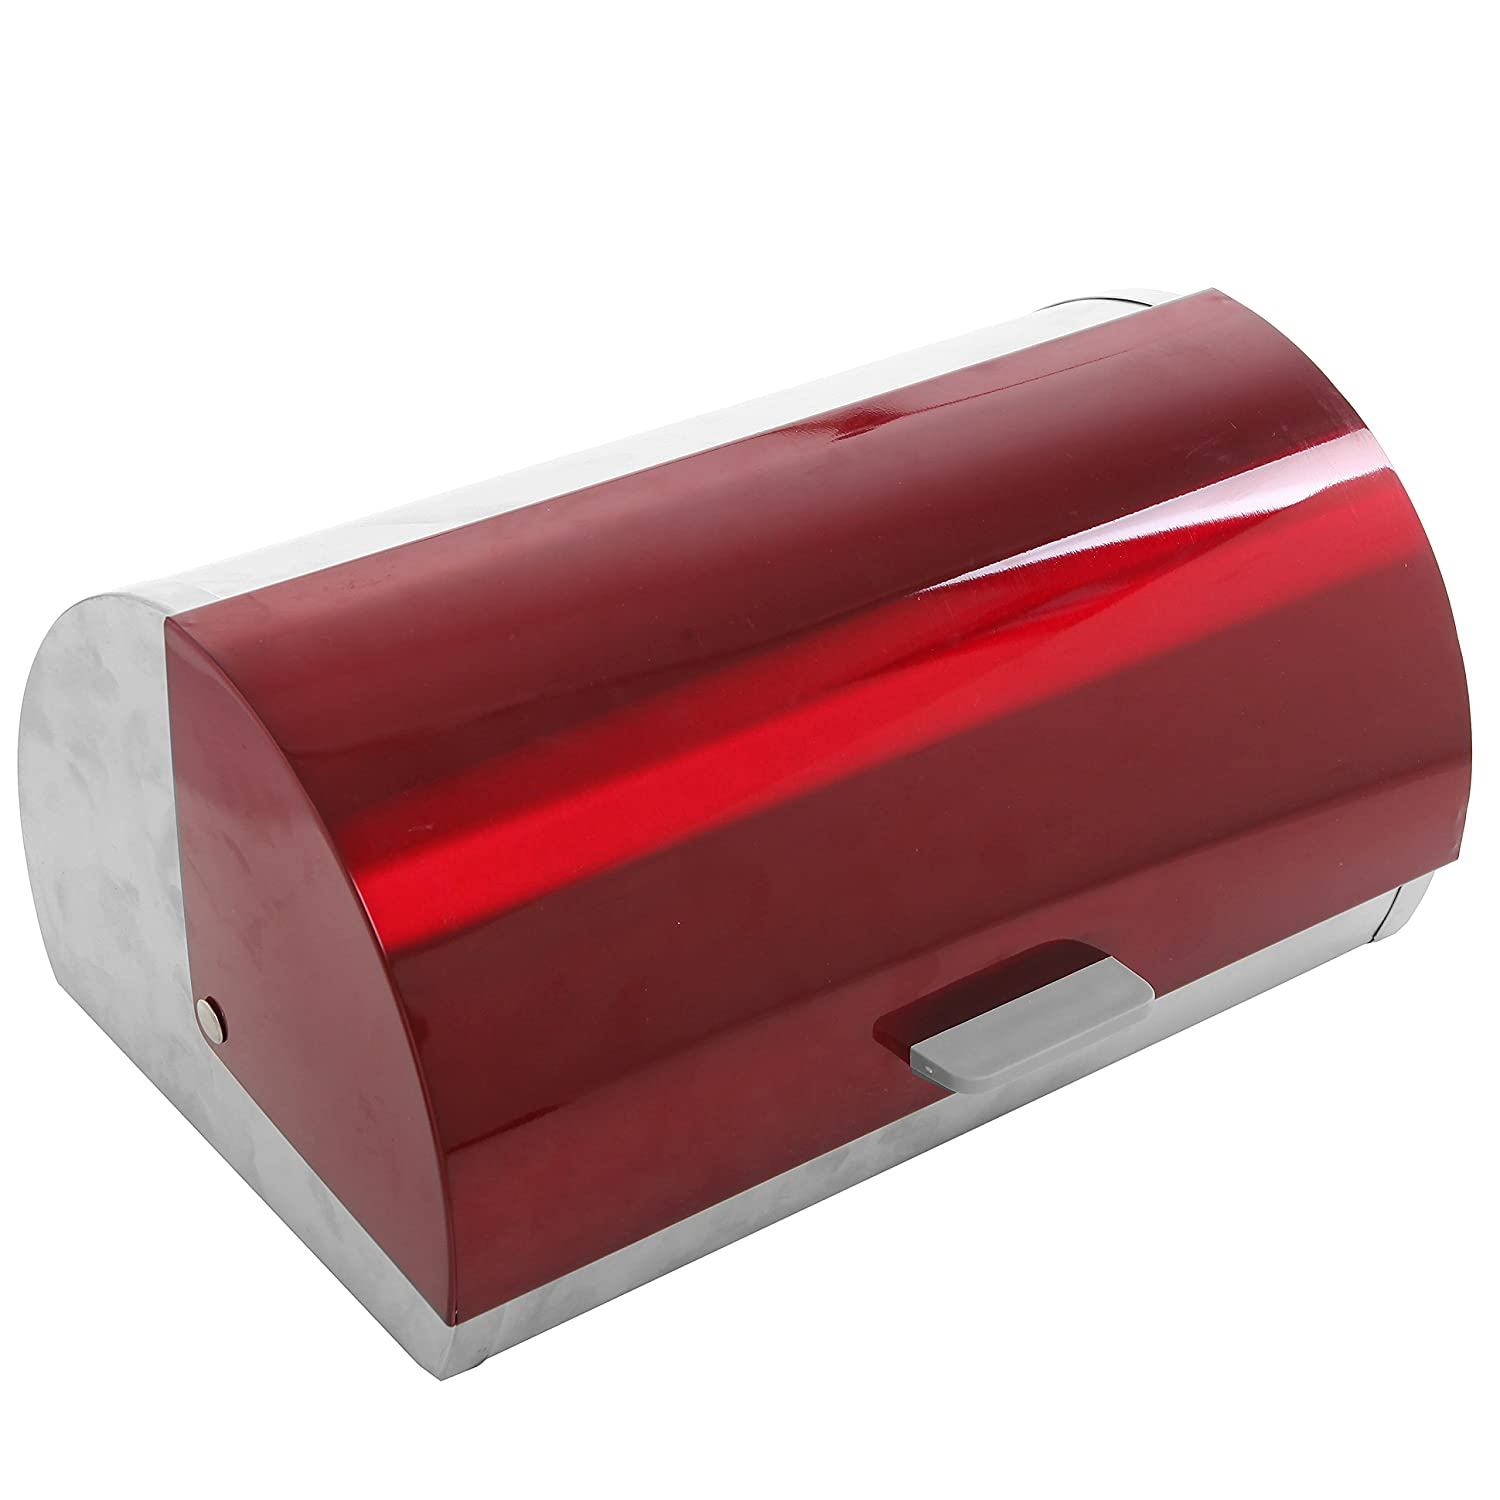 Designer Kitchen High Gloss Red Lidded Stainless Steel Metal Roll Top Bread Box / Storage Bin - MyGift AX-AY-ABHI-105676